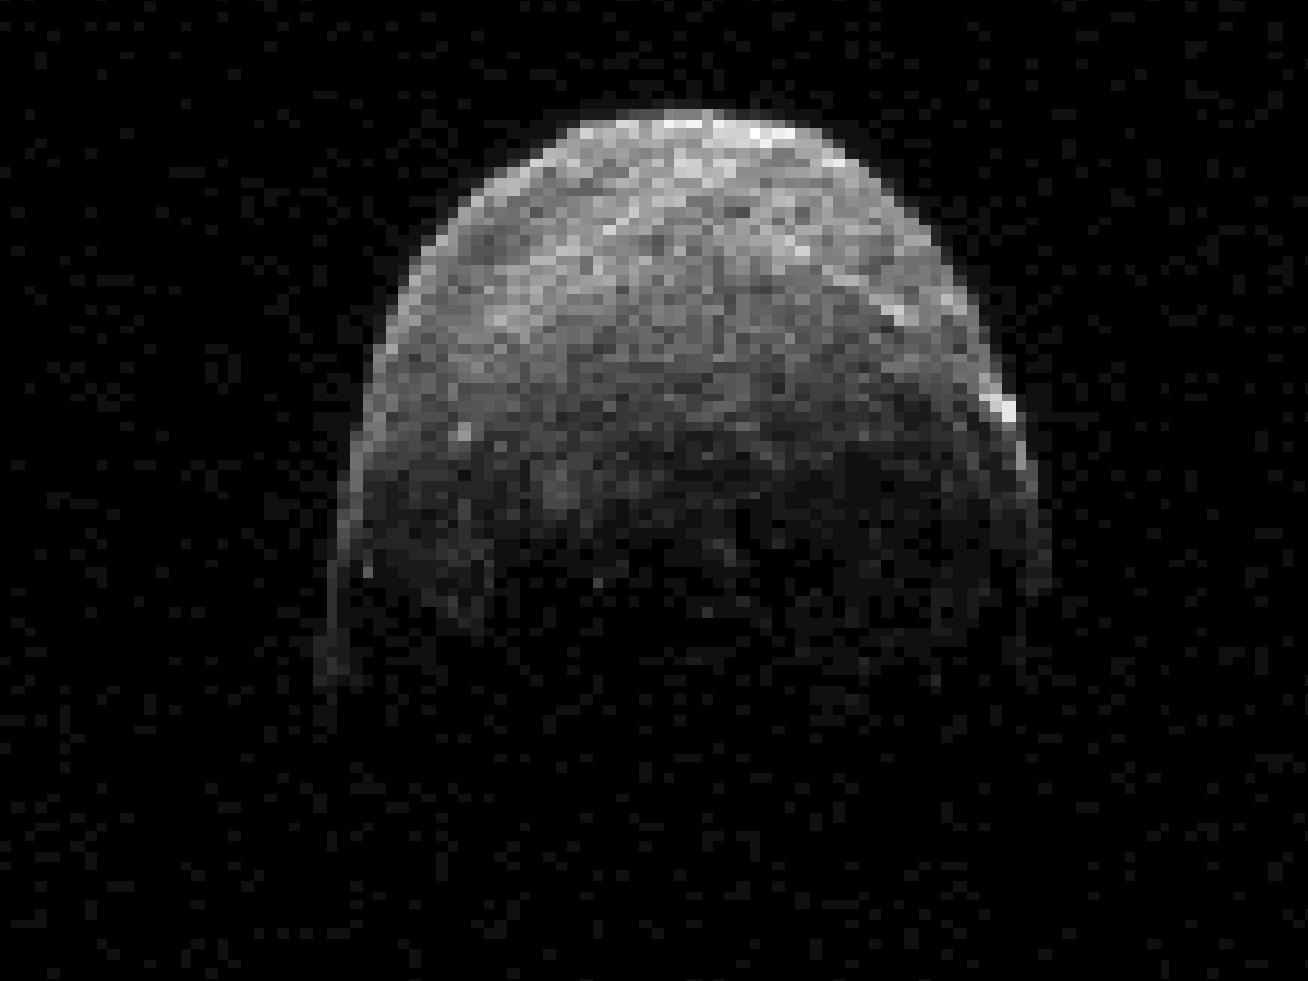 New Image of Asteroid 2005 YU55